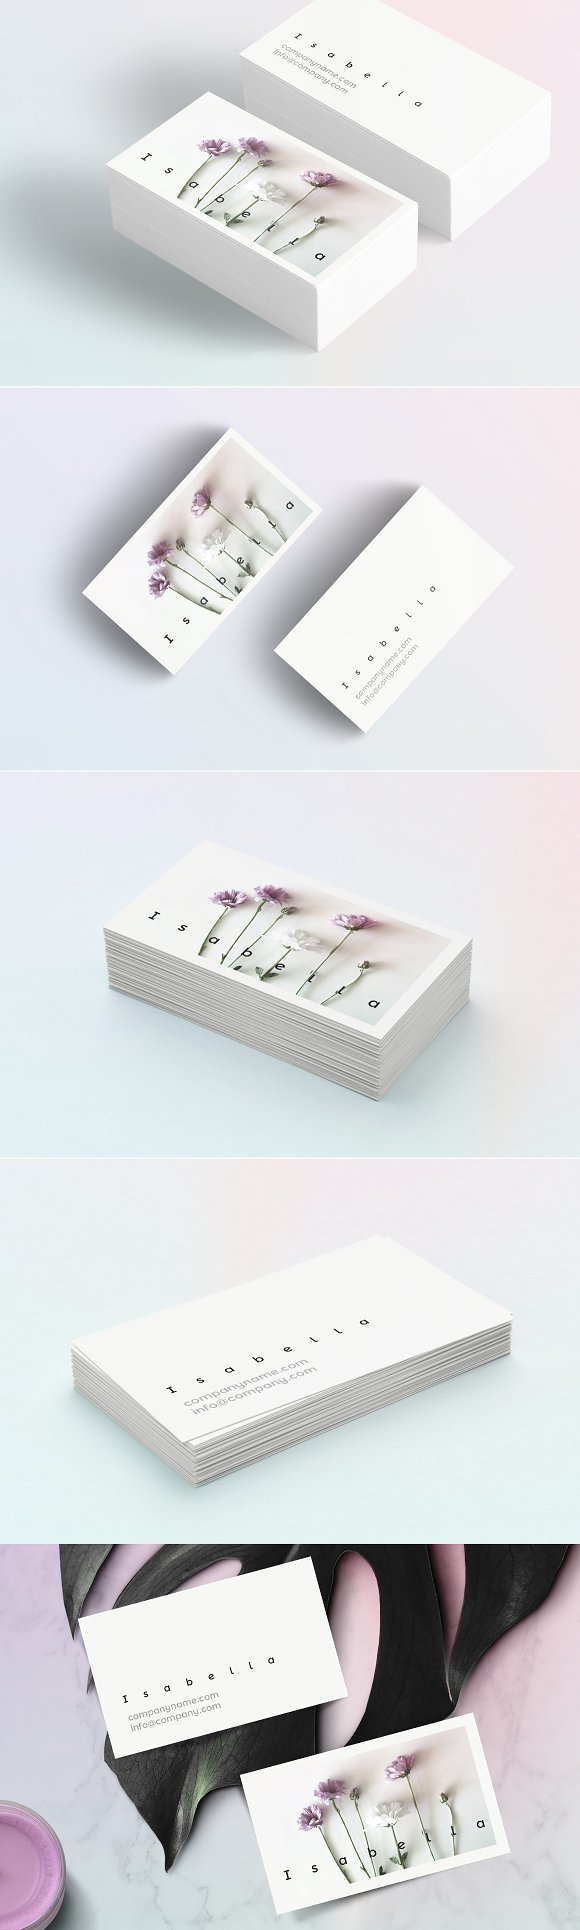 Isabella Floral Business Card Templates Creative Mystore365com Meter6013capacitancecapacitortesterincircuithtml Cards